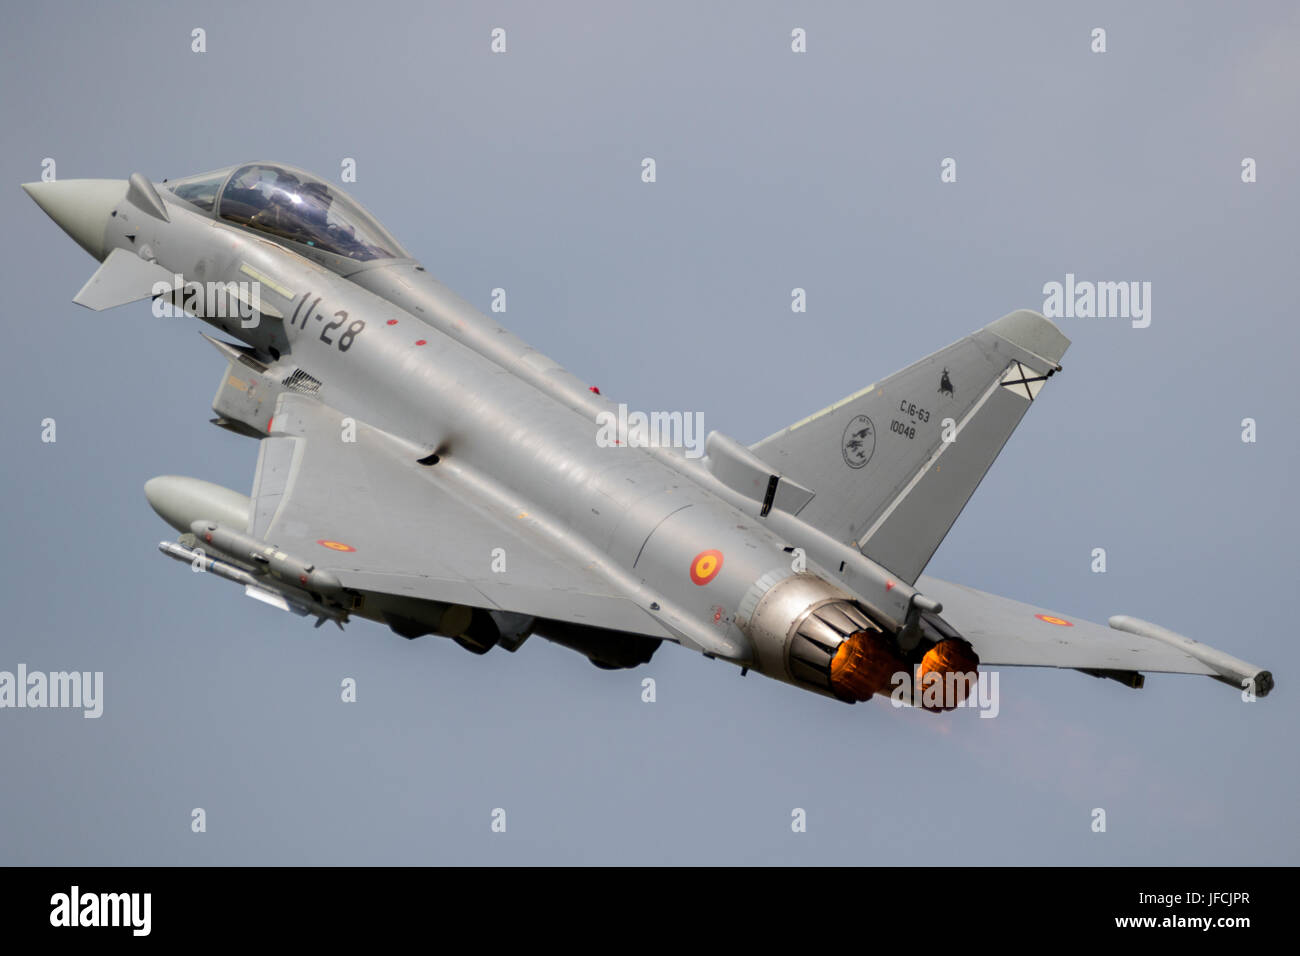 FLORENNES, BELGIUM - JUN 15, 2017: Spanish Air Force Eurofighter Typhoon fighter jet taking off with afterburner Stock Photo